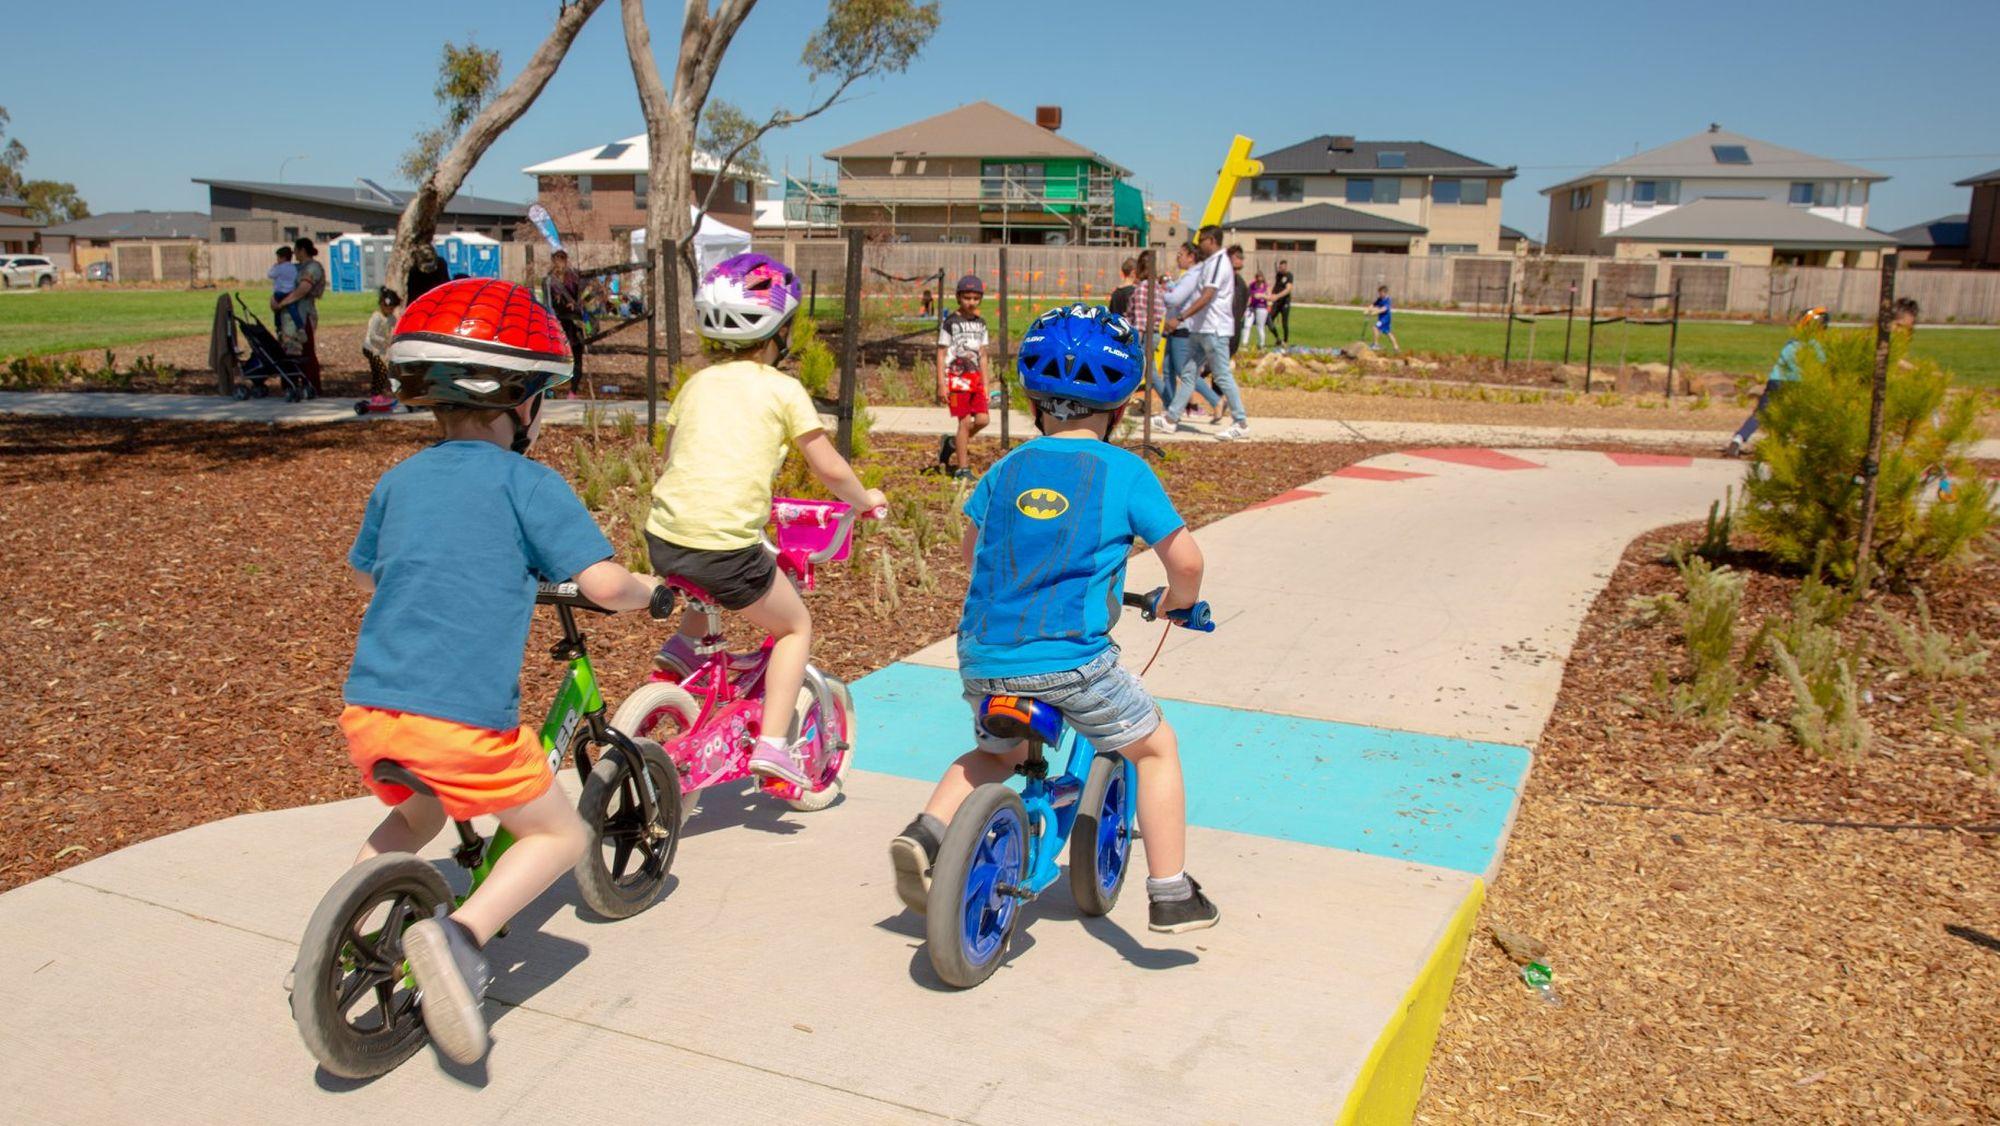 Berwick Waters' Grand Prix Park gets the tick with families